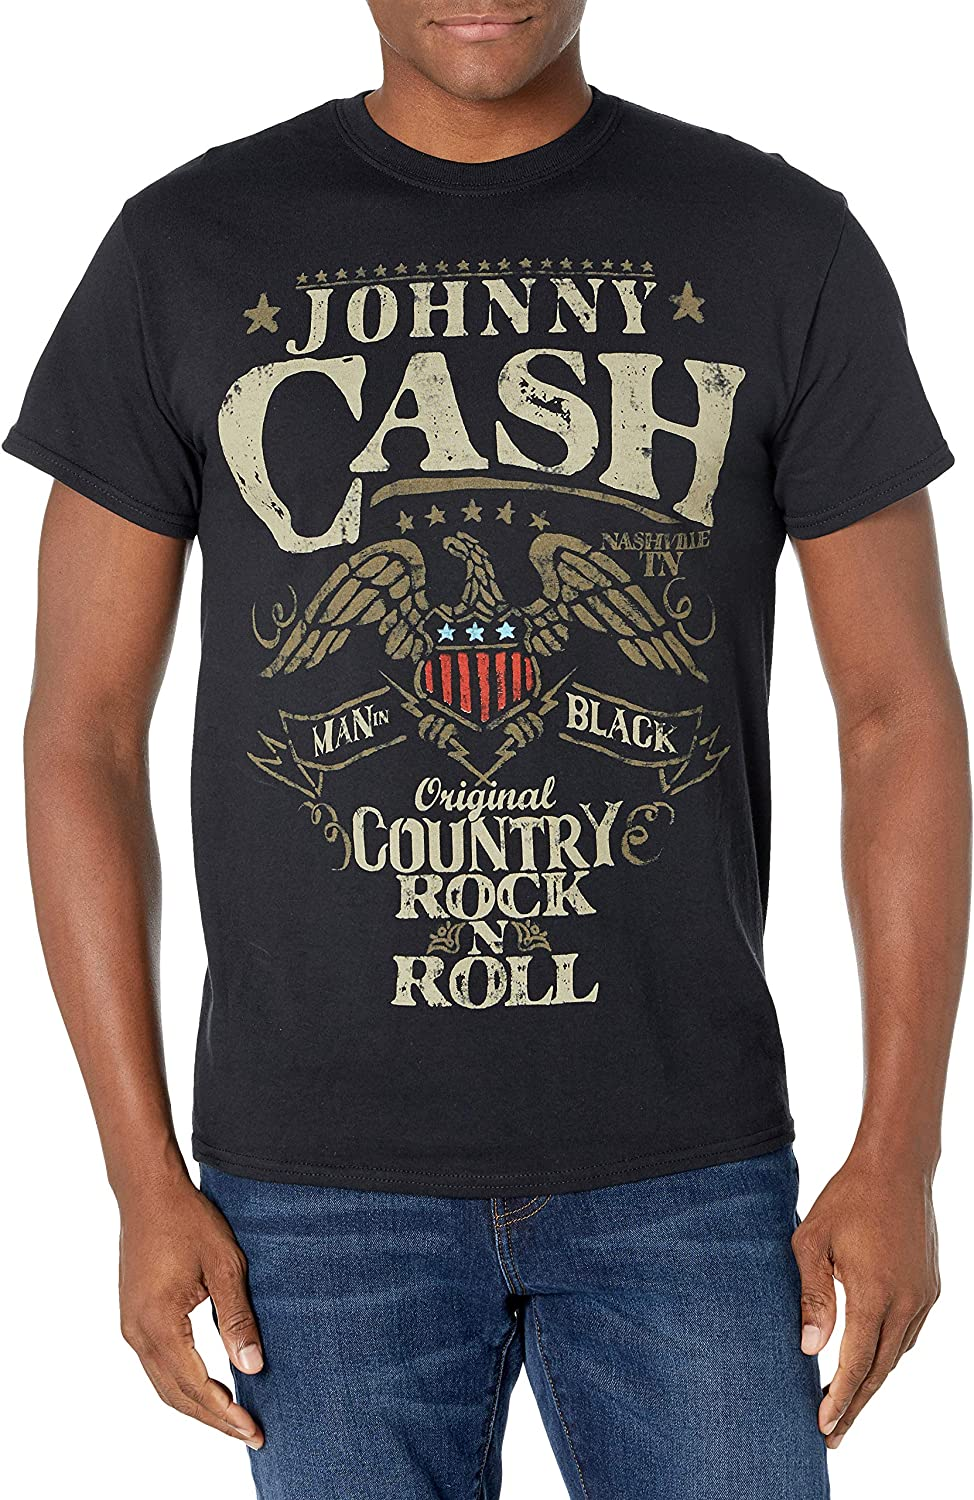 Johnny Cash Official Country T-shirt New color N Boston Mall Roll Rock